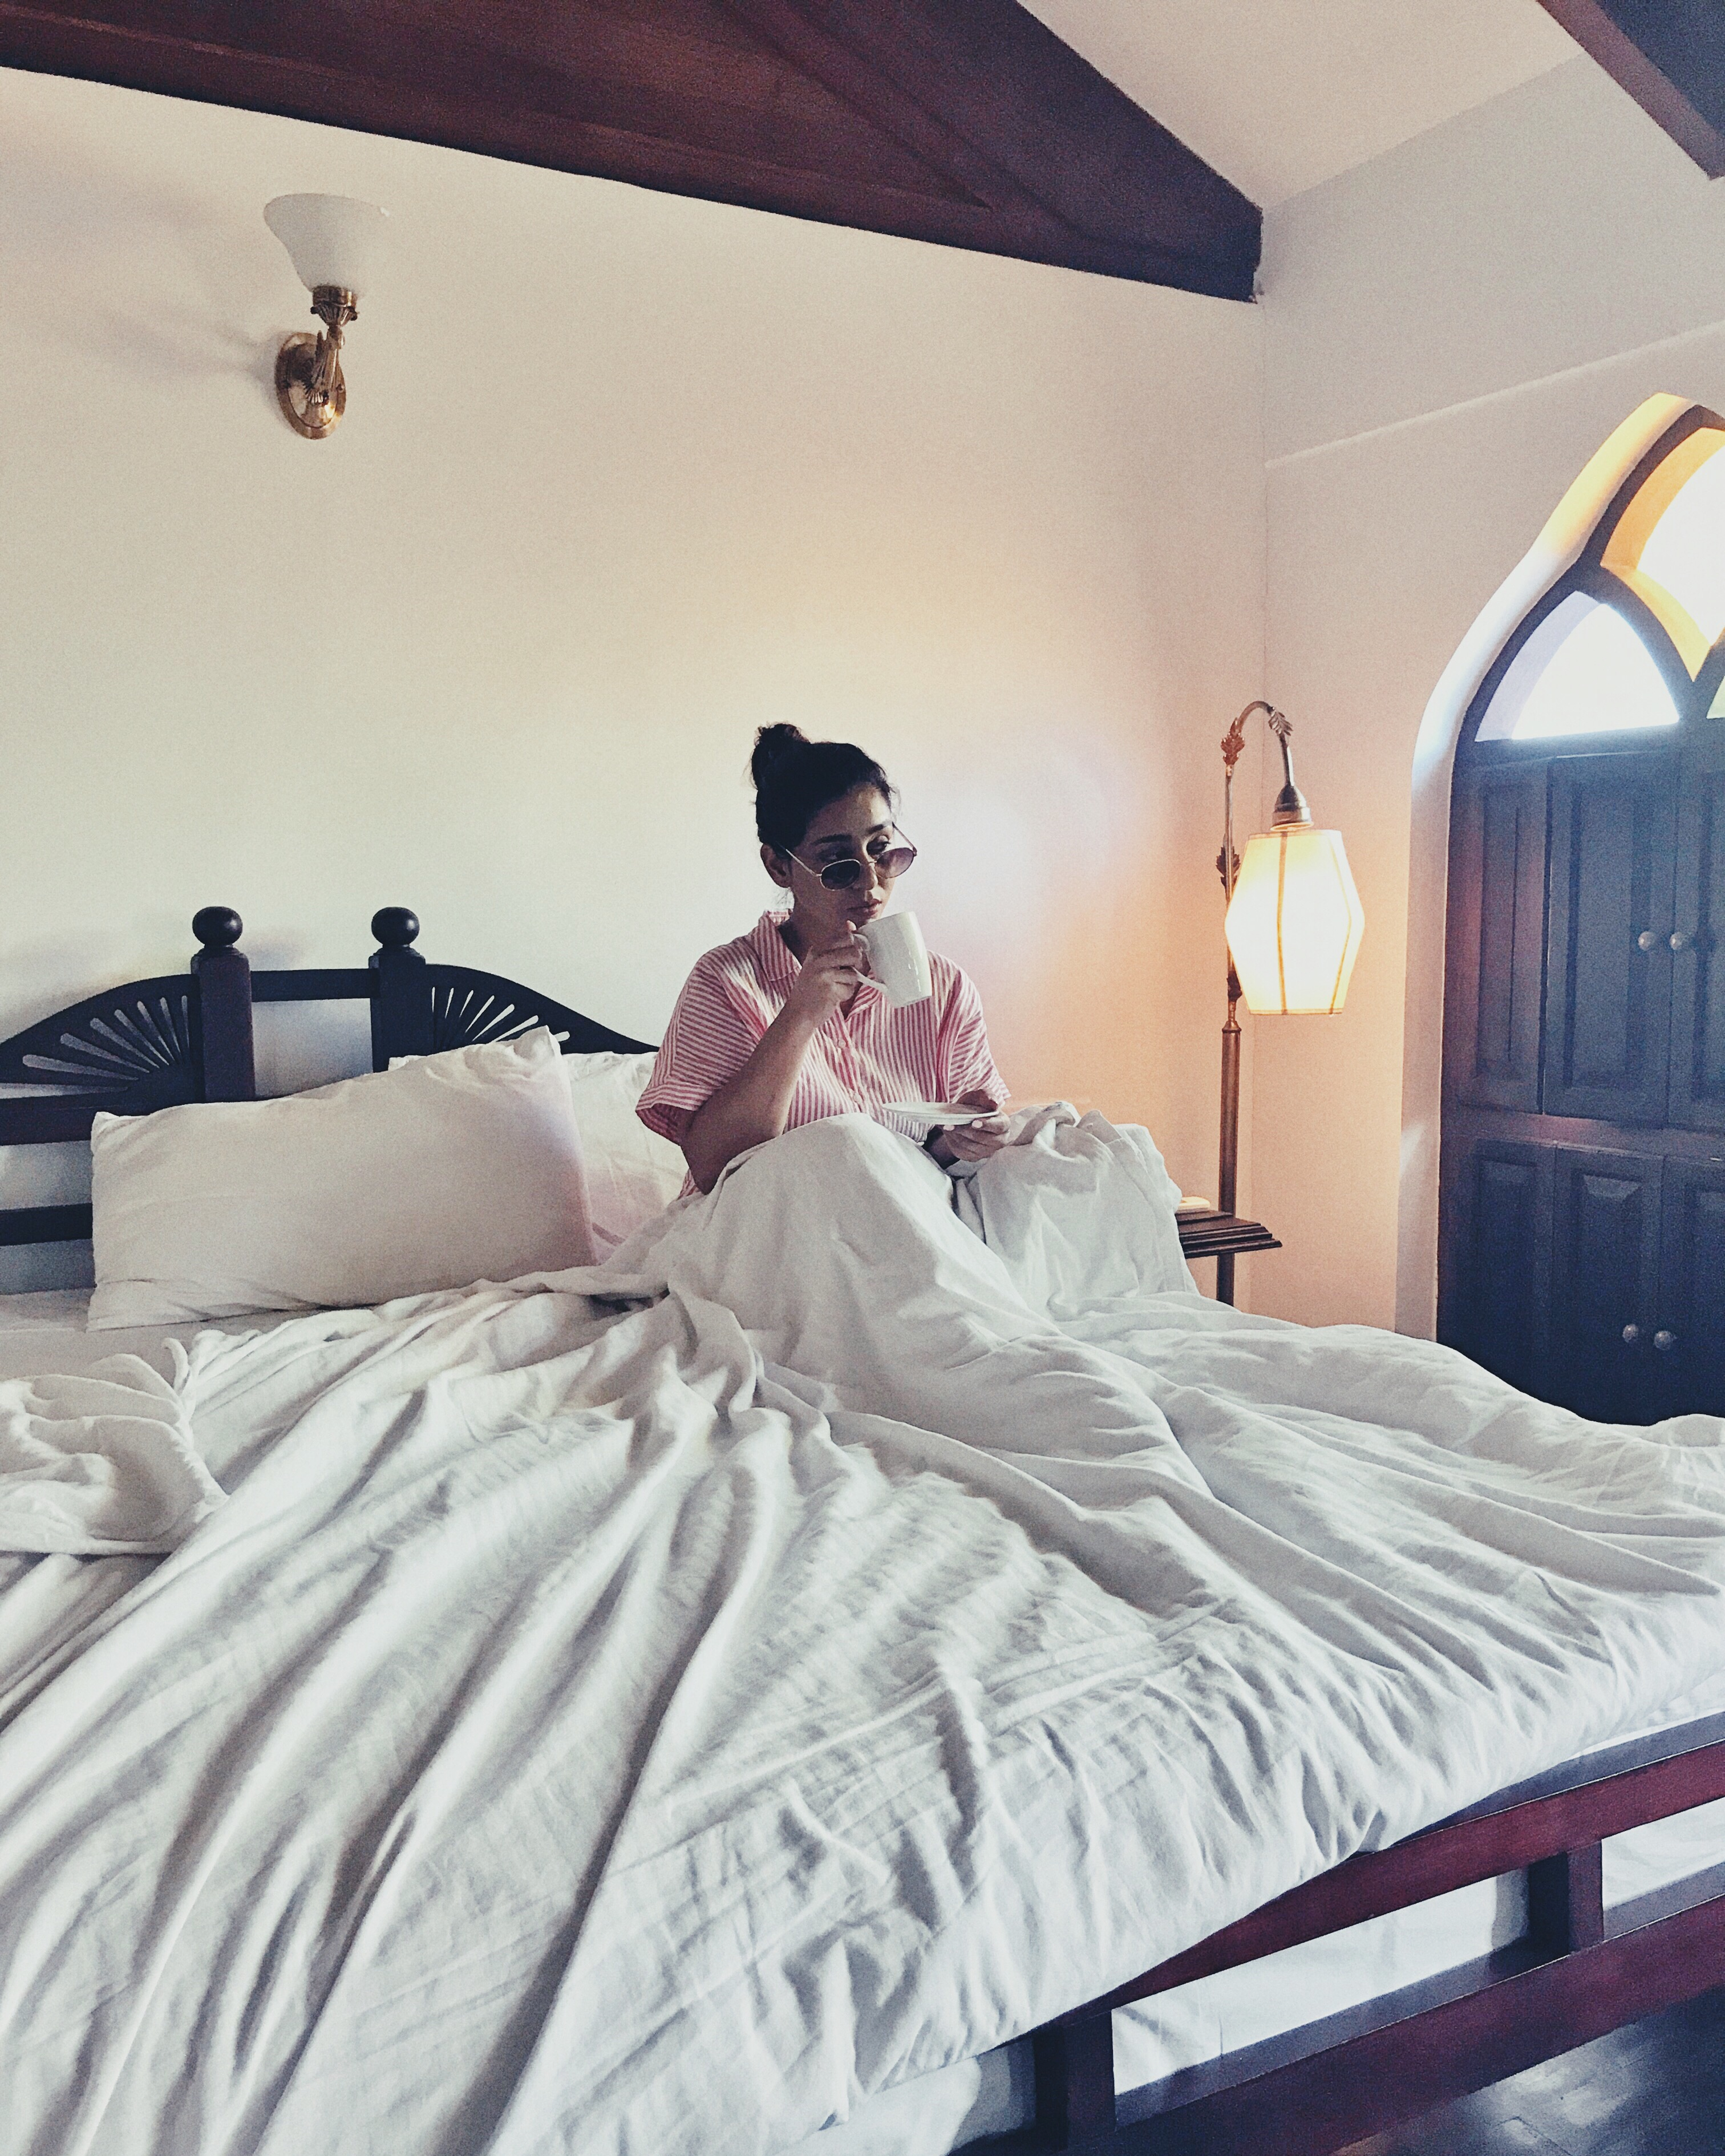 Kochi Travel Guide, Places to stay in Kochi